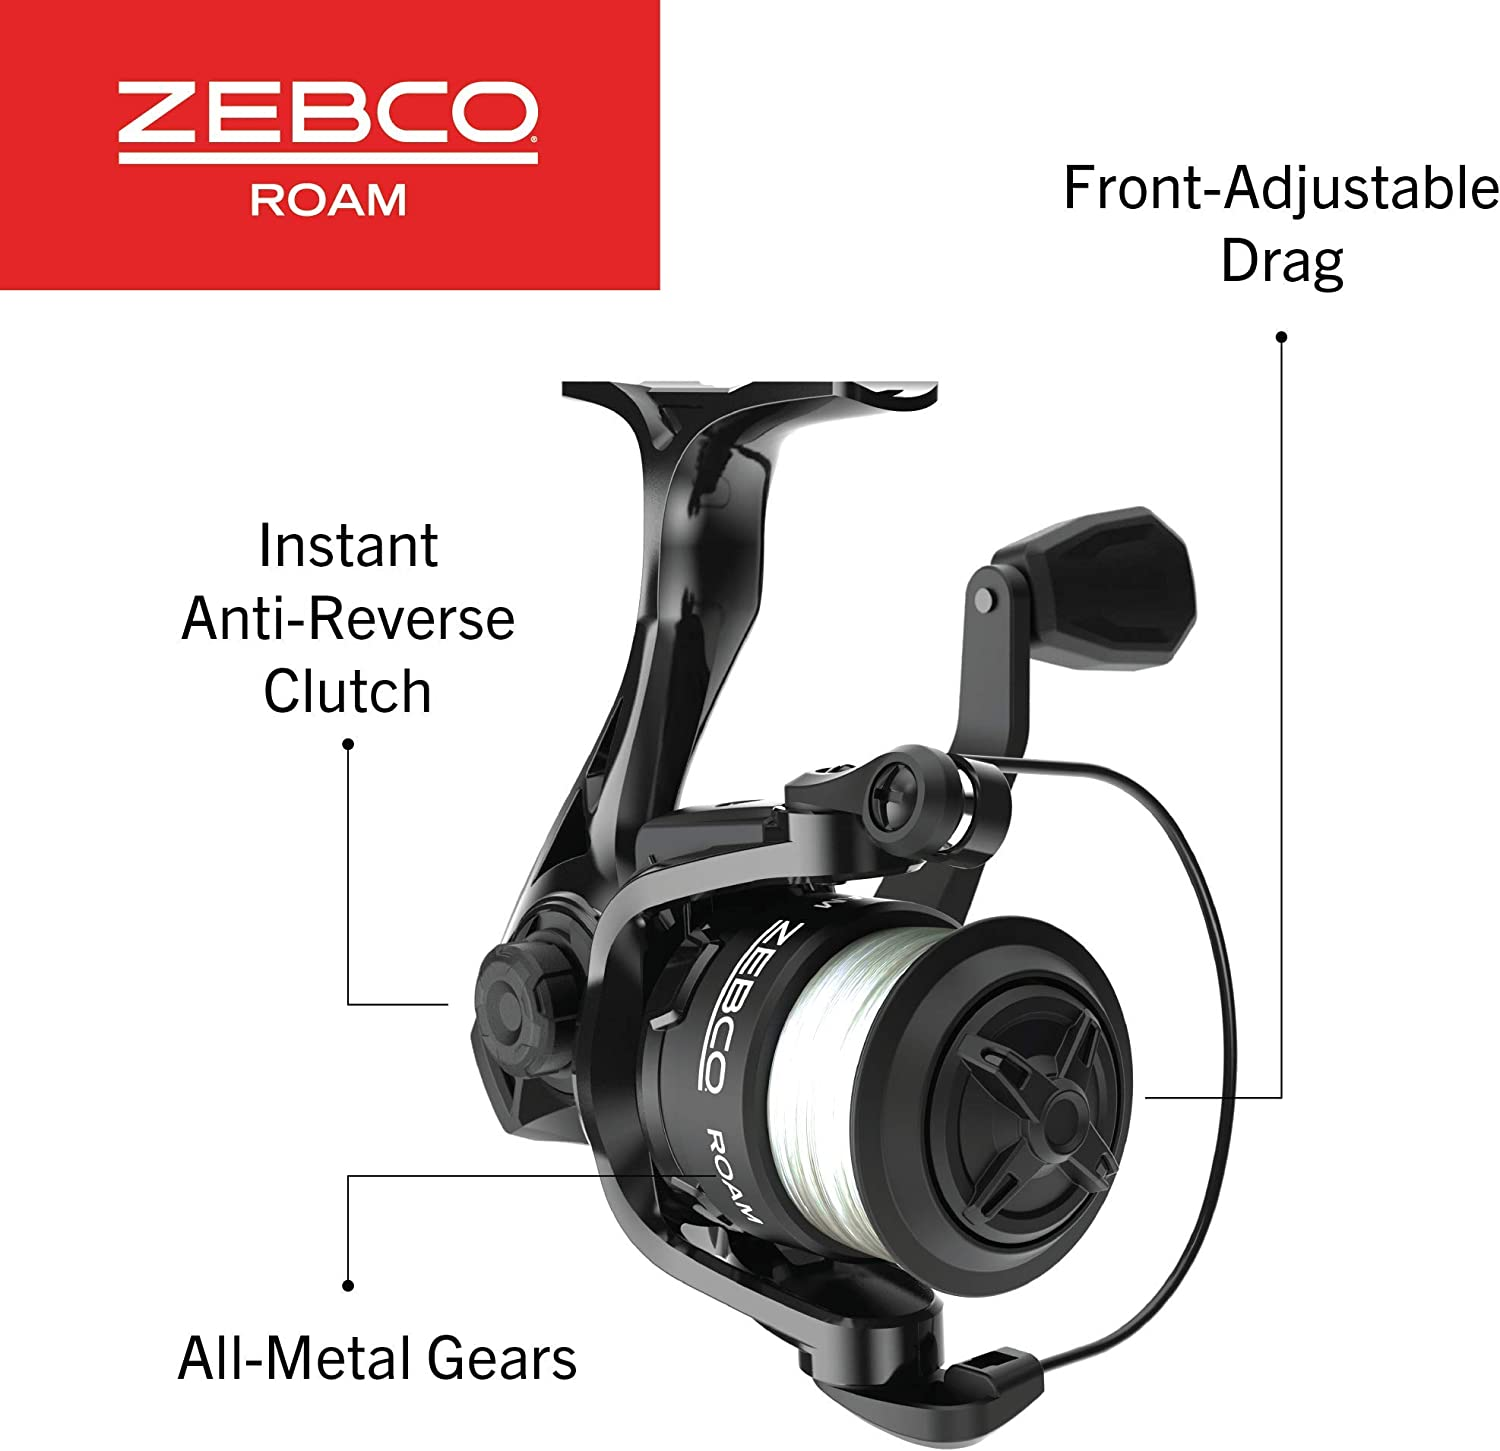 All-Metal Gears Zebco Roam Spinning or Spincast Fishing Reel Soft-Touch Handle Knob Black Pre-spooled with 10 lb Cajun Line